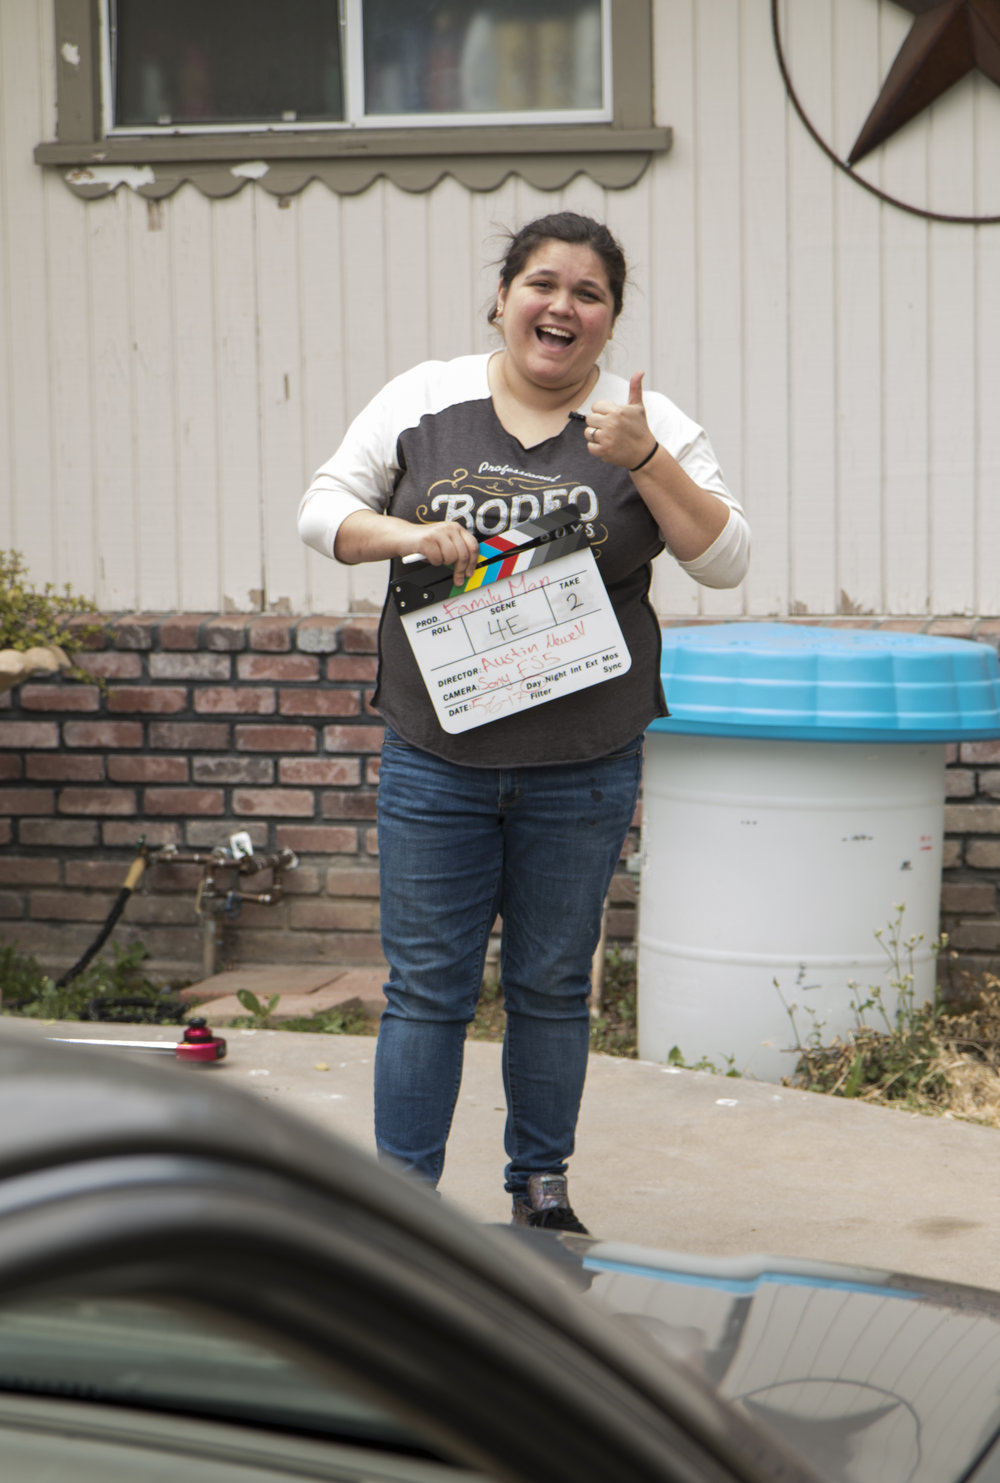 Jess thumbs up with clapboard.JPG